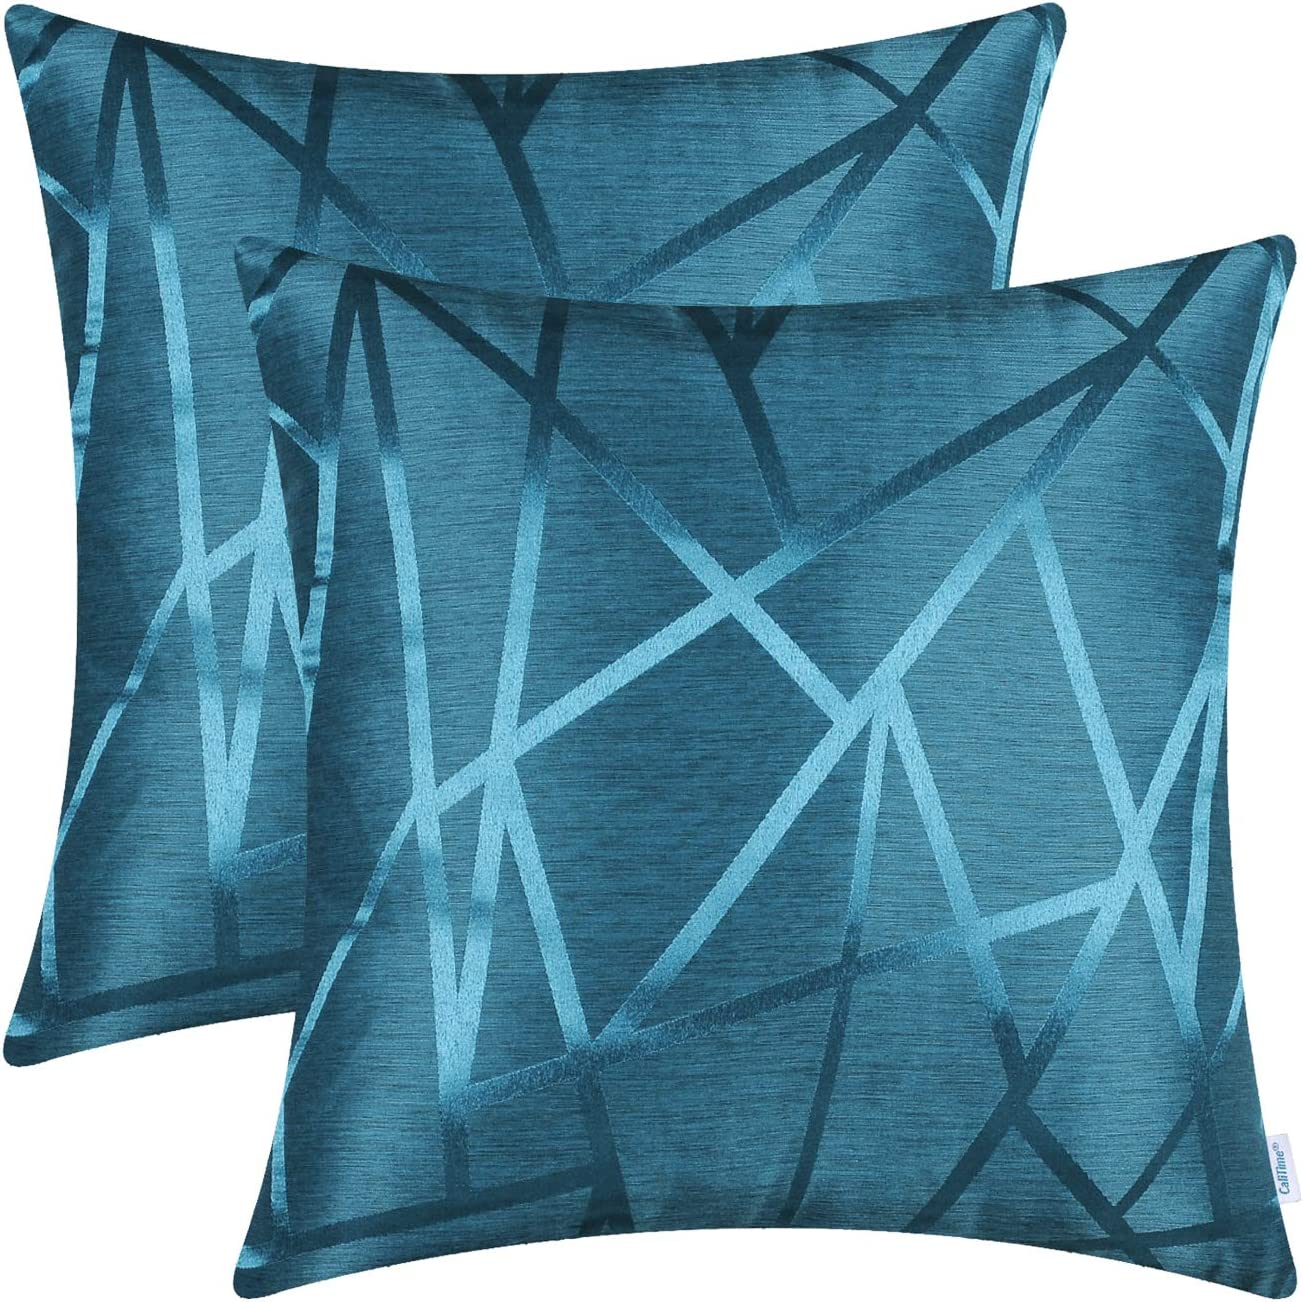 CaliTime Pack of 2 Throw Pillow Covers Cases for Couch Sofa Home Decor Modern Shining & Dull Contrast Triangles Abstract Lines Geometric 18 X 18 Inches Seaport Blue